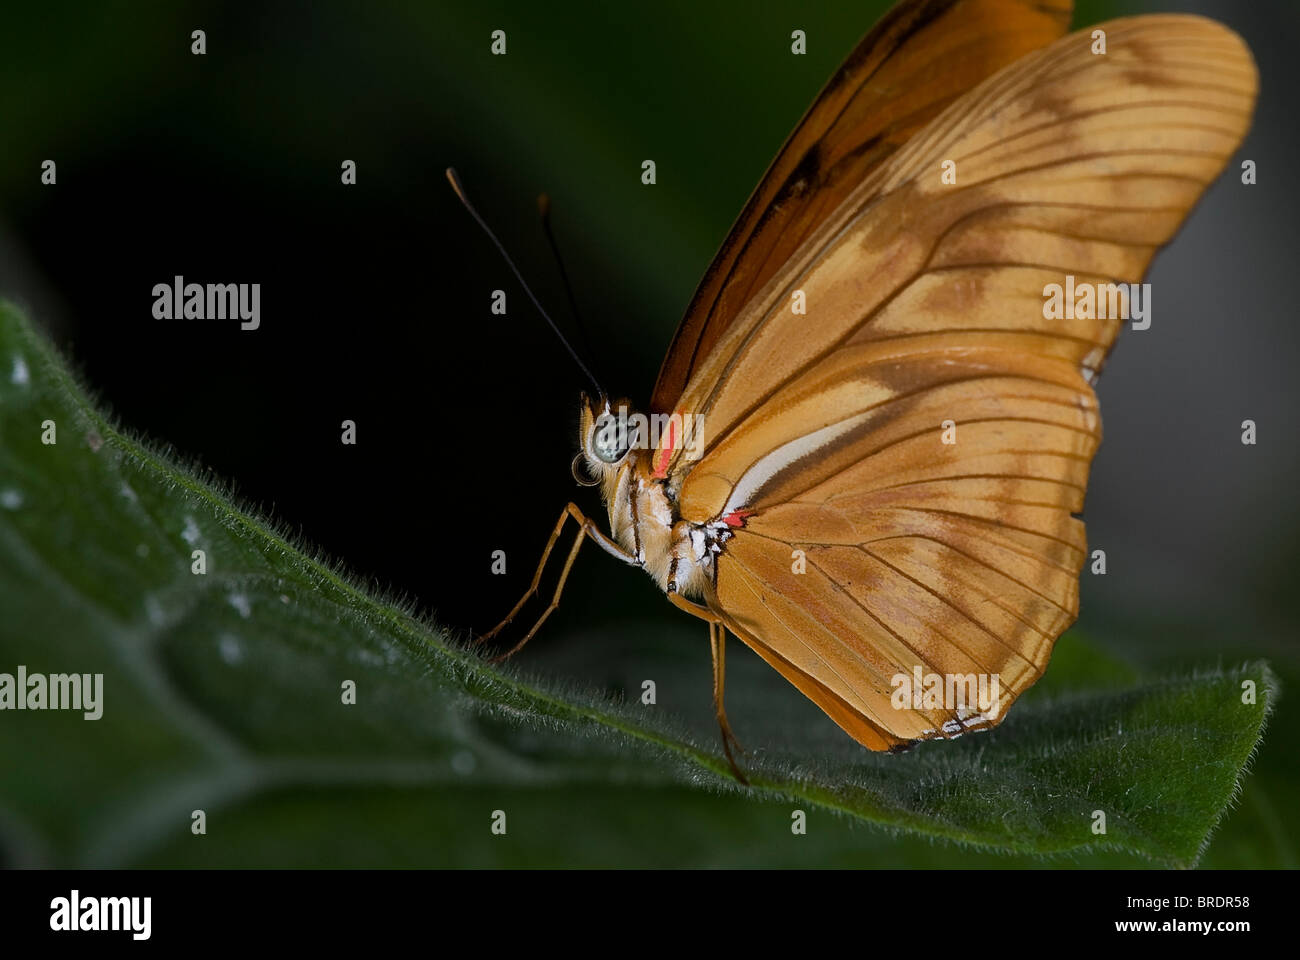 Butterfly Garden United States Stock Photos & Butterfly Garden ...